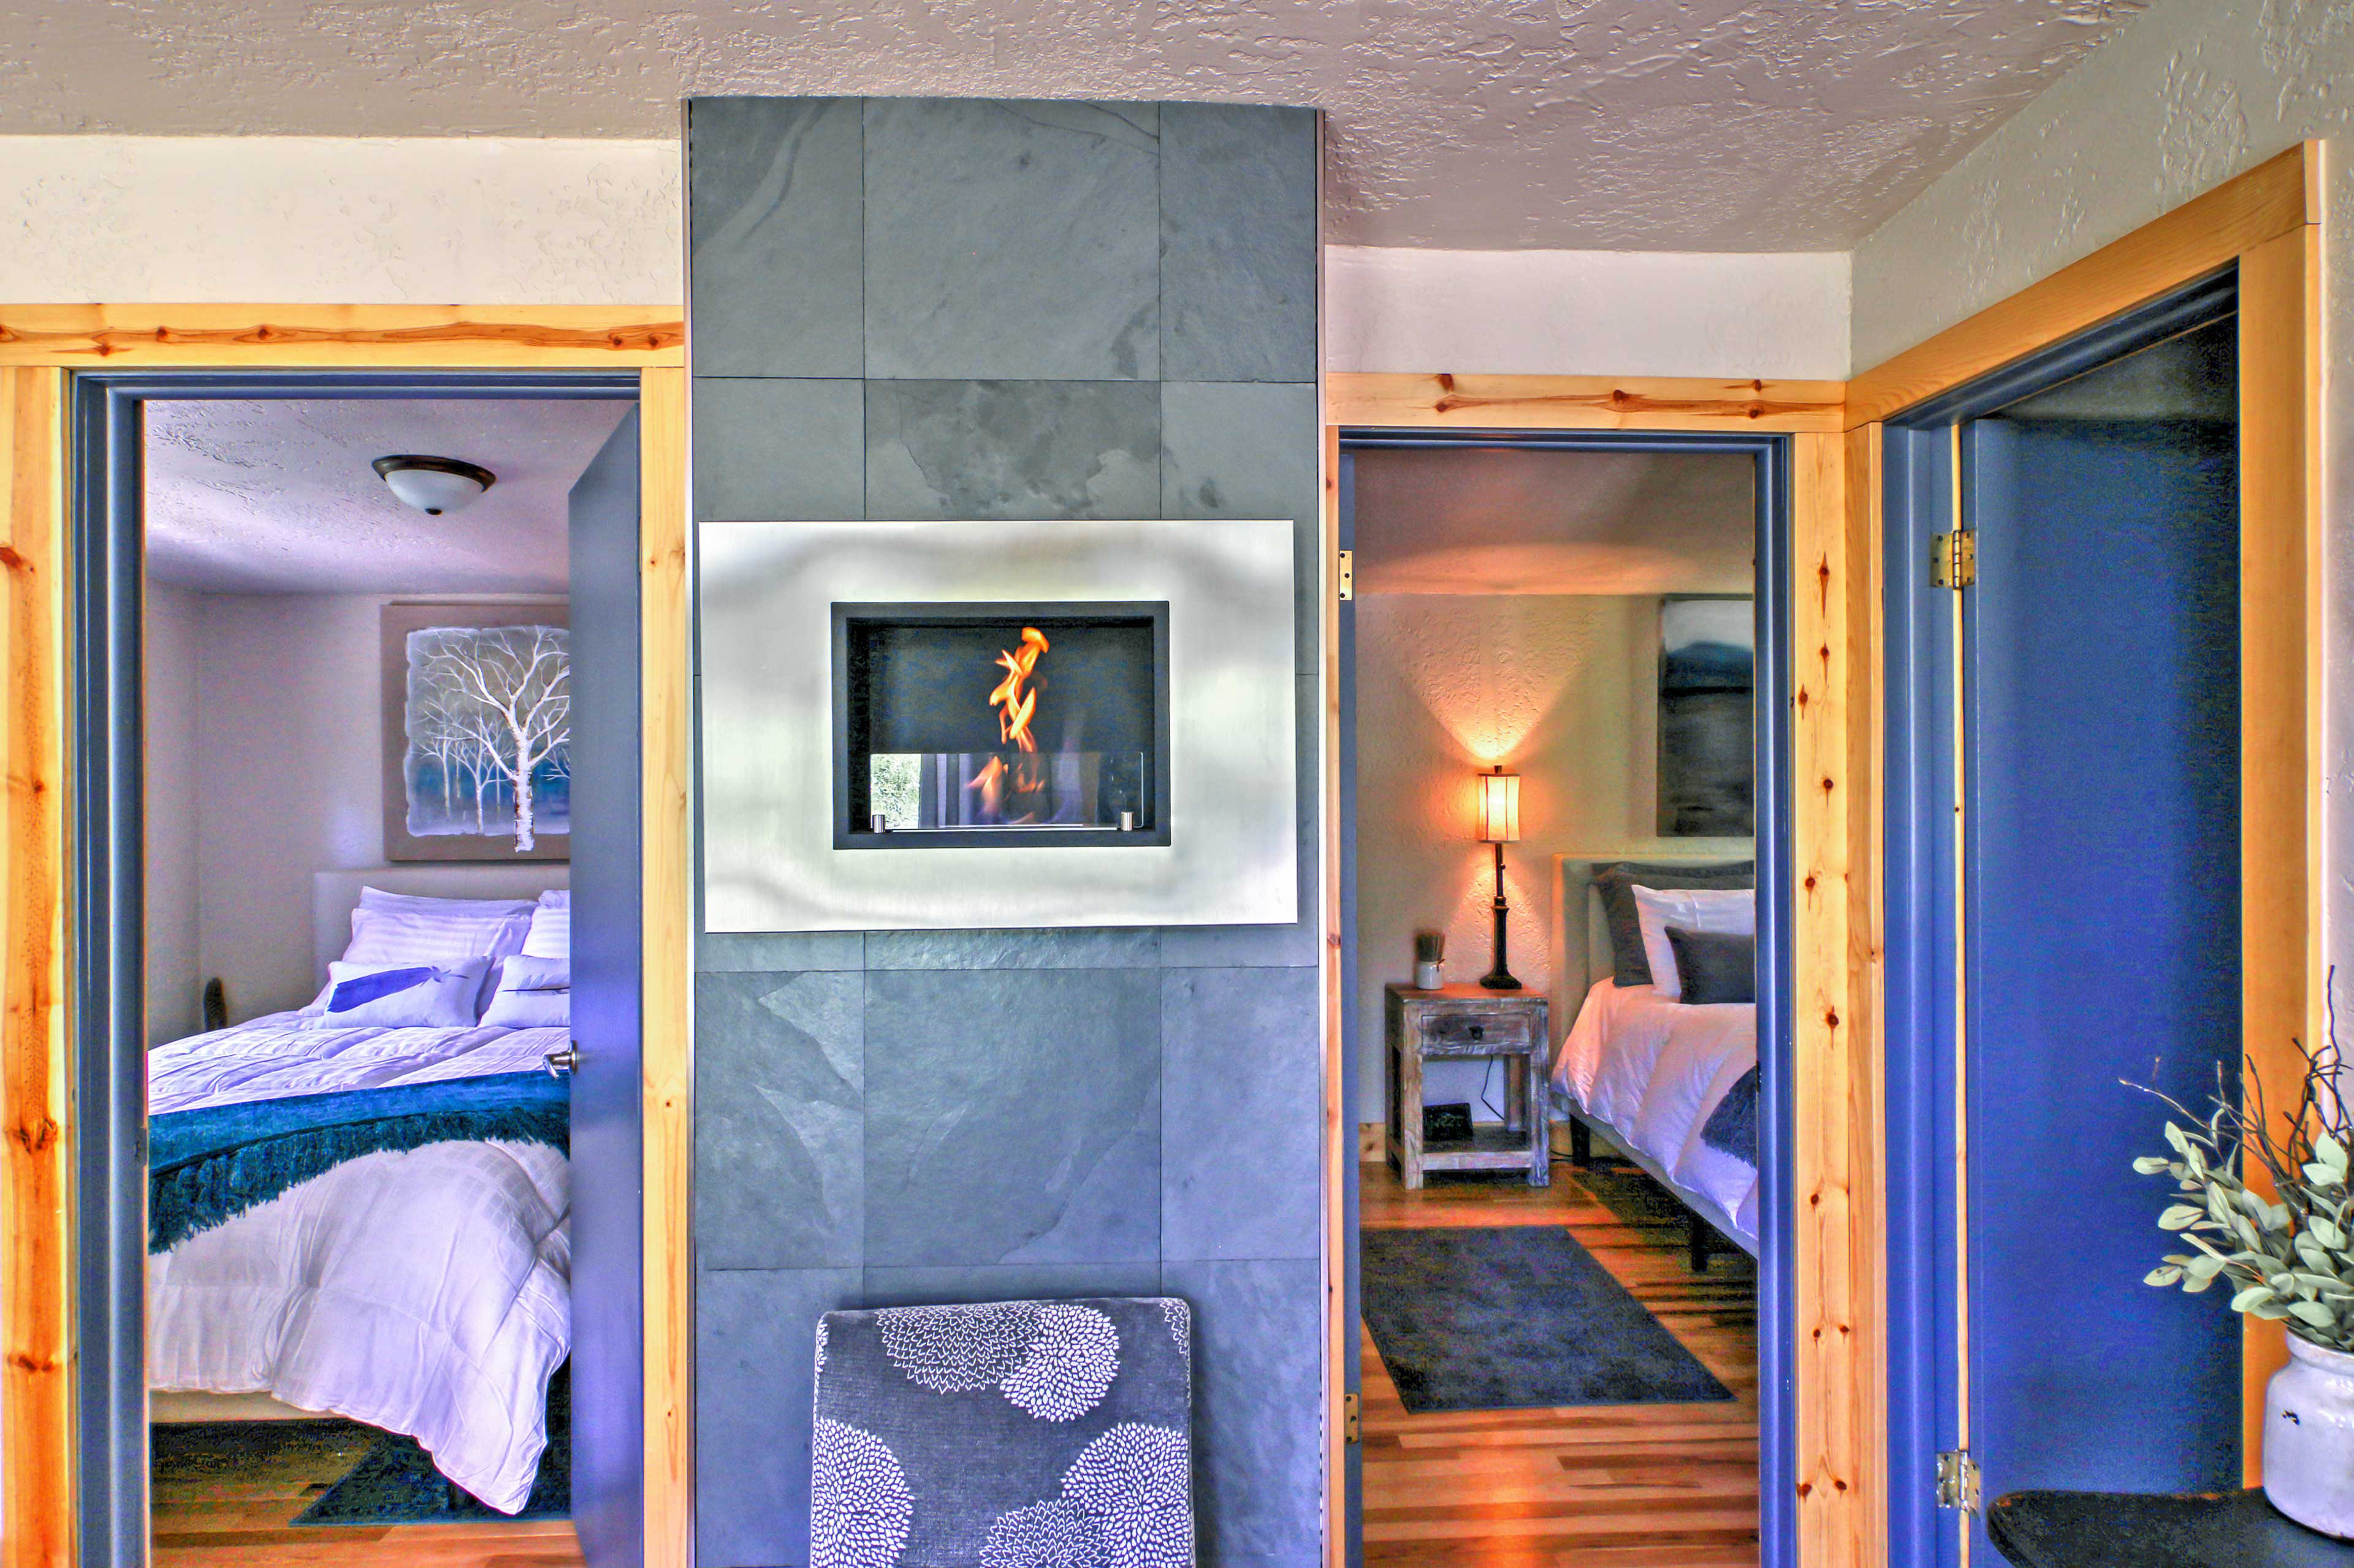 Drift off to sleep in one of the 2 bedrooms, both providing queen-sized beds.